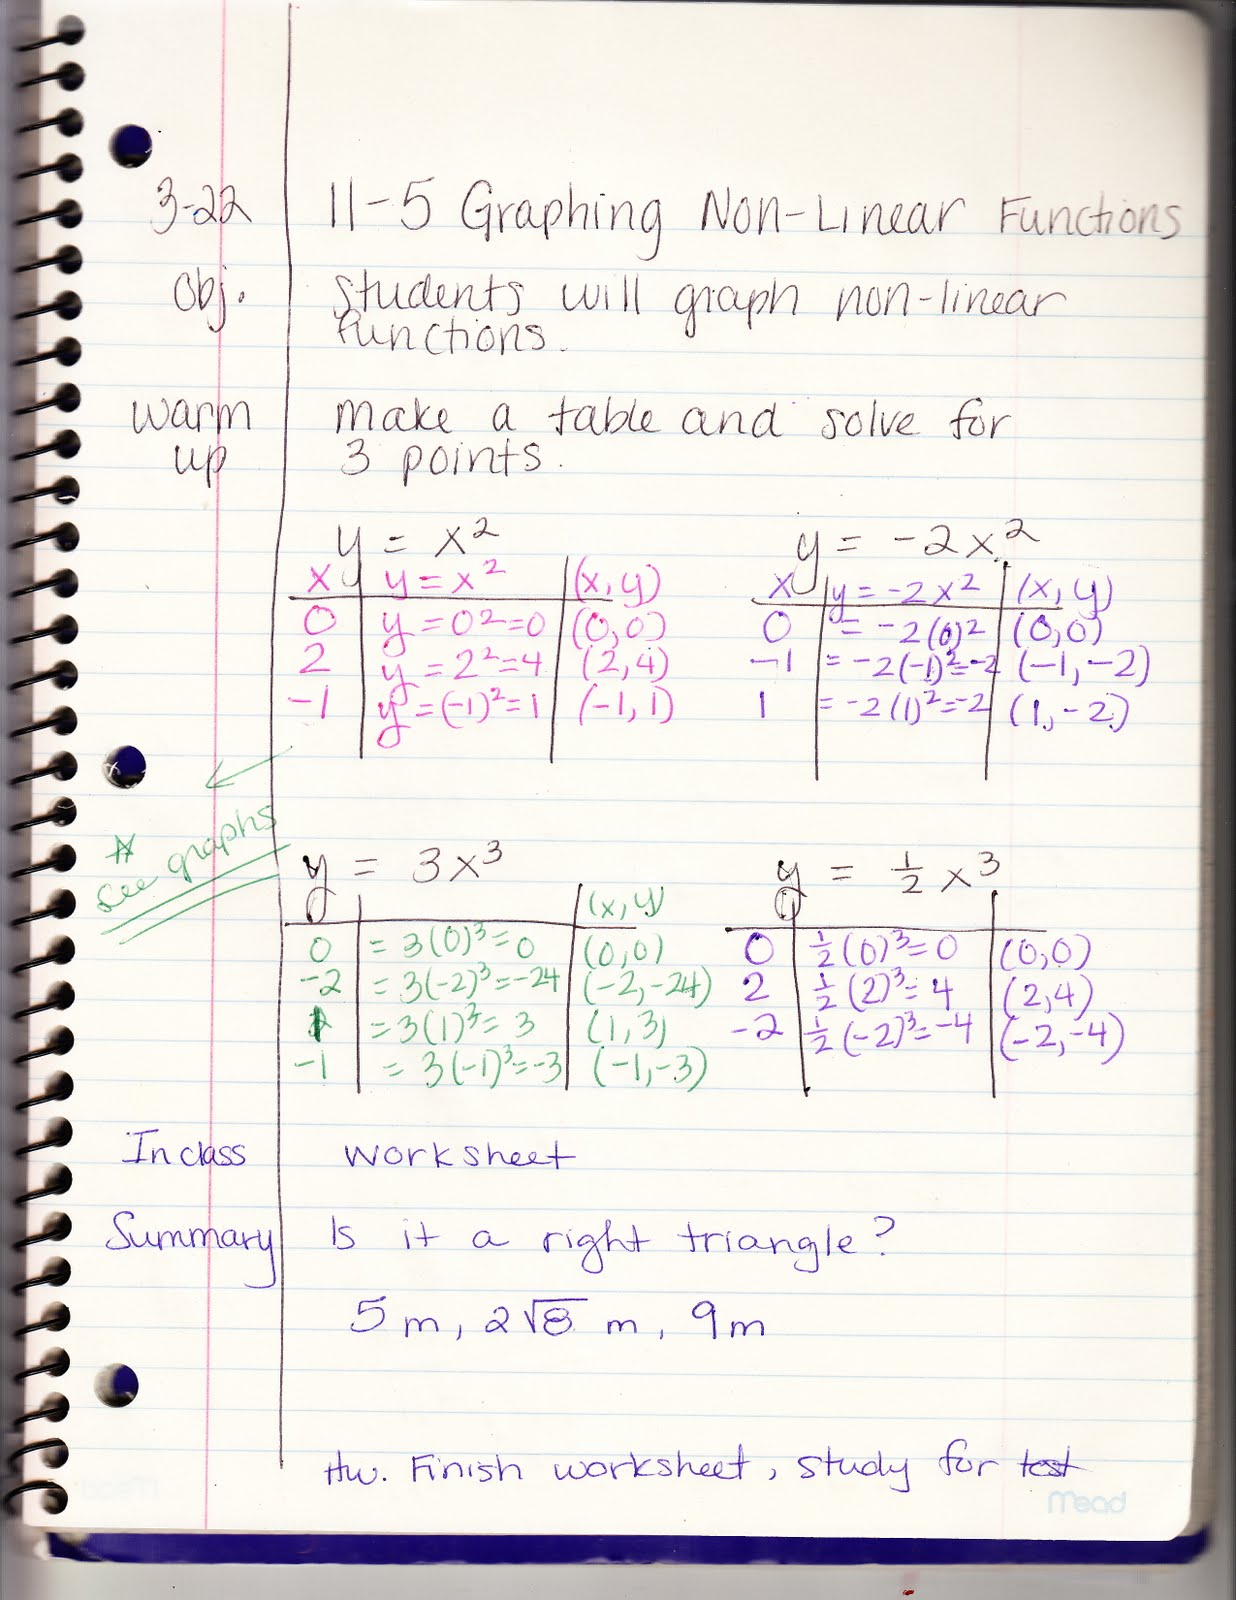 Ms Jean S Classroom Blog 11 5 Graphing Non Linear Equations